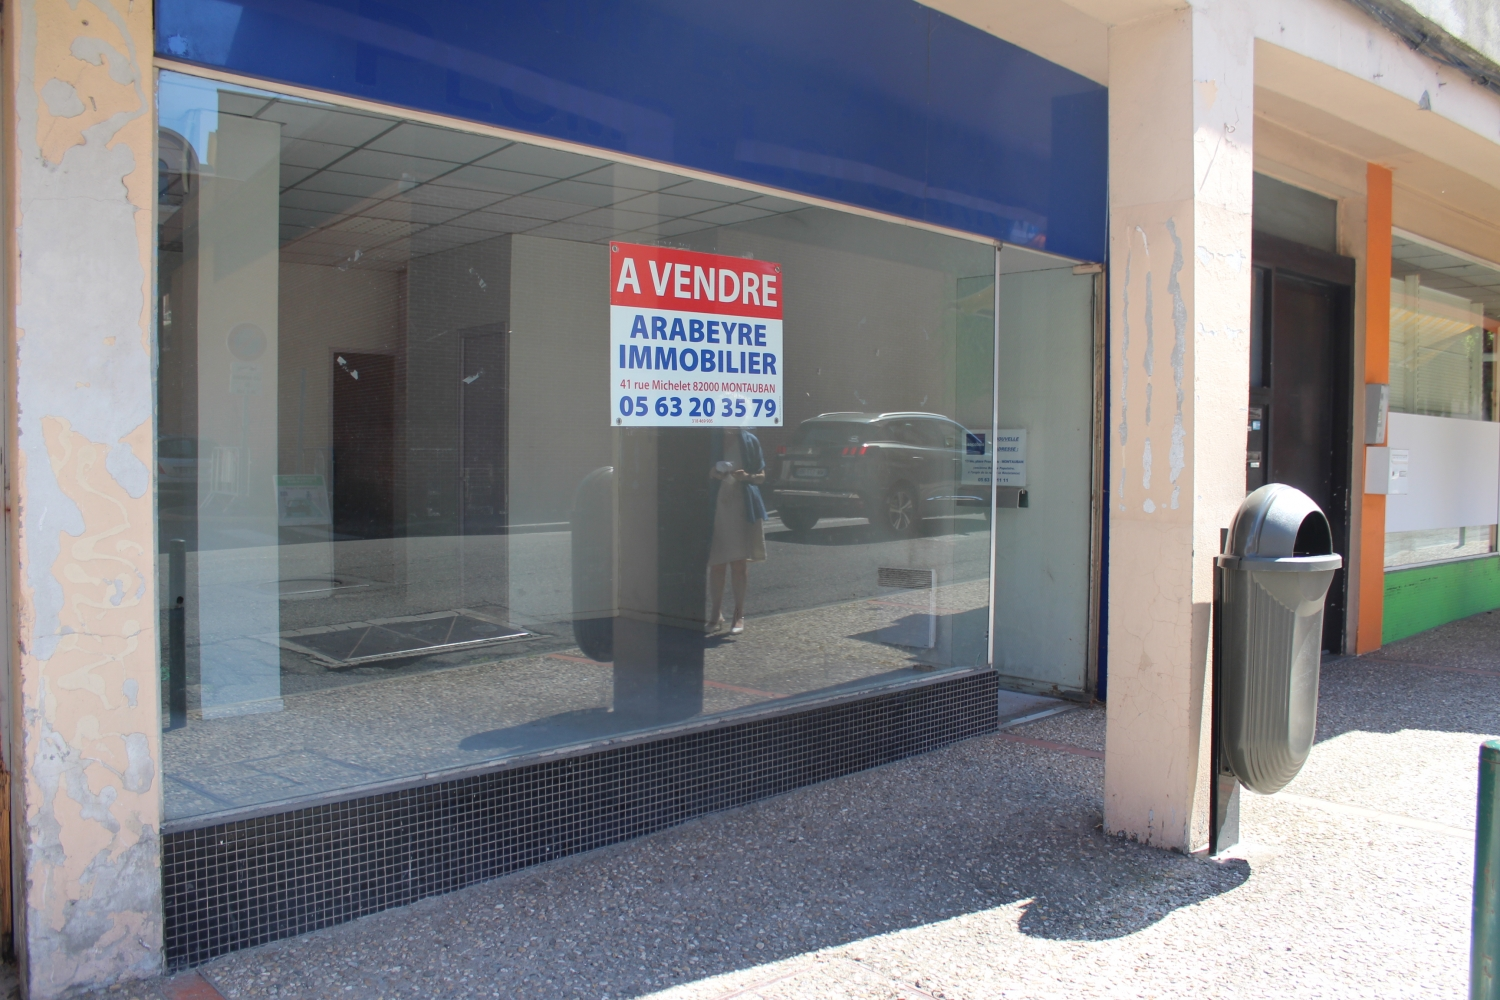 Local commercial Montauban Agence Arabeyre immobilier